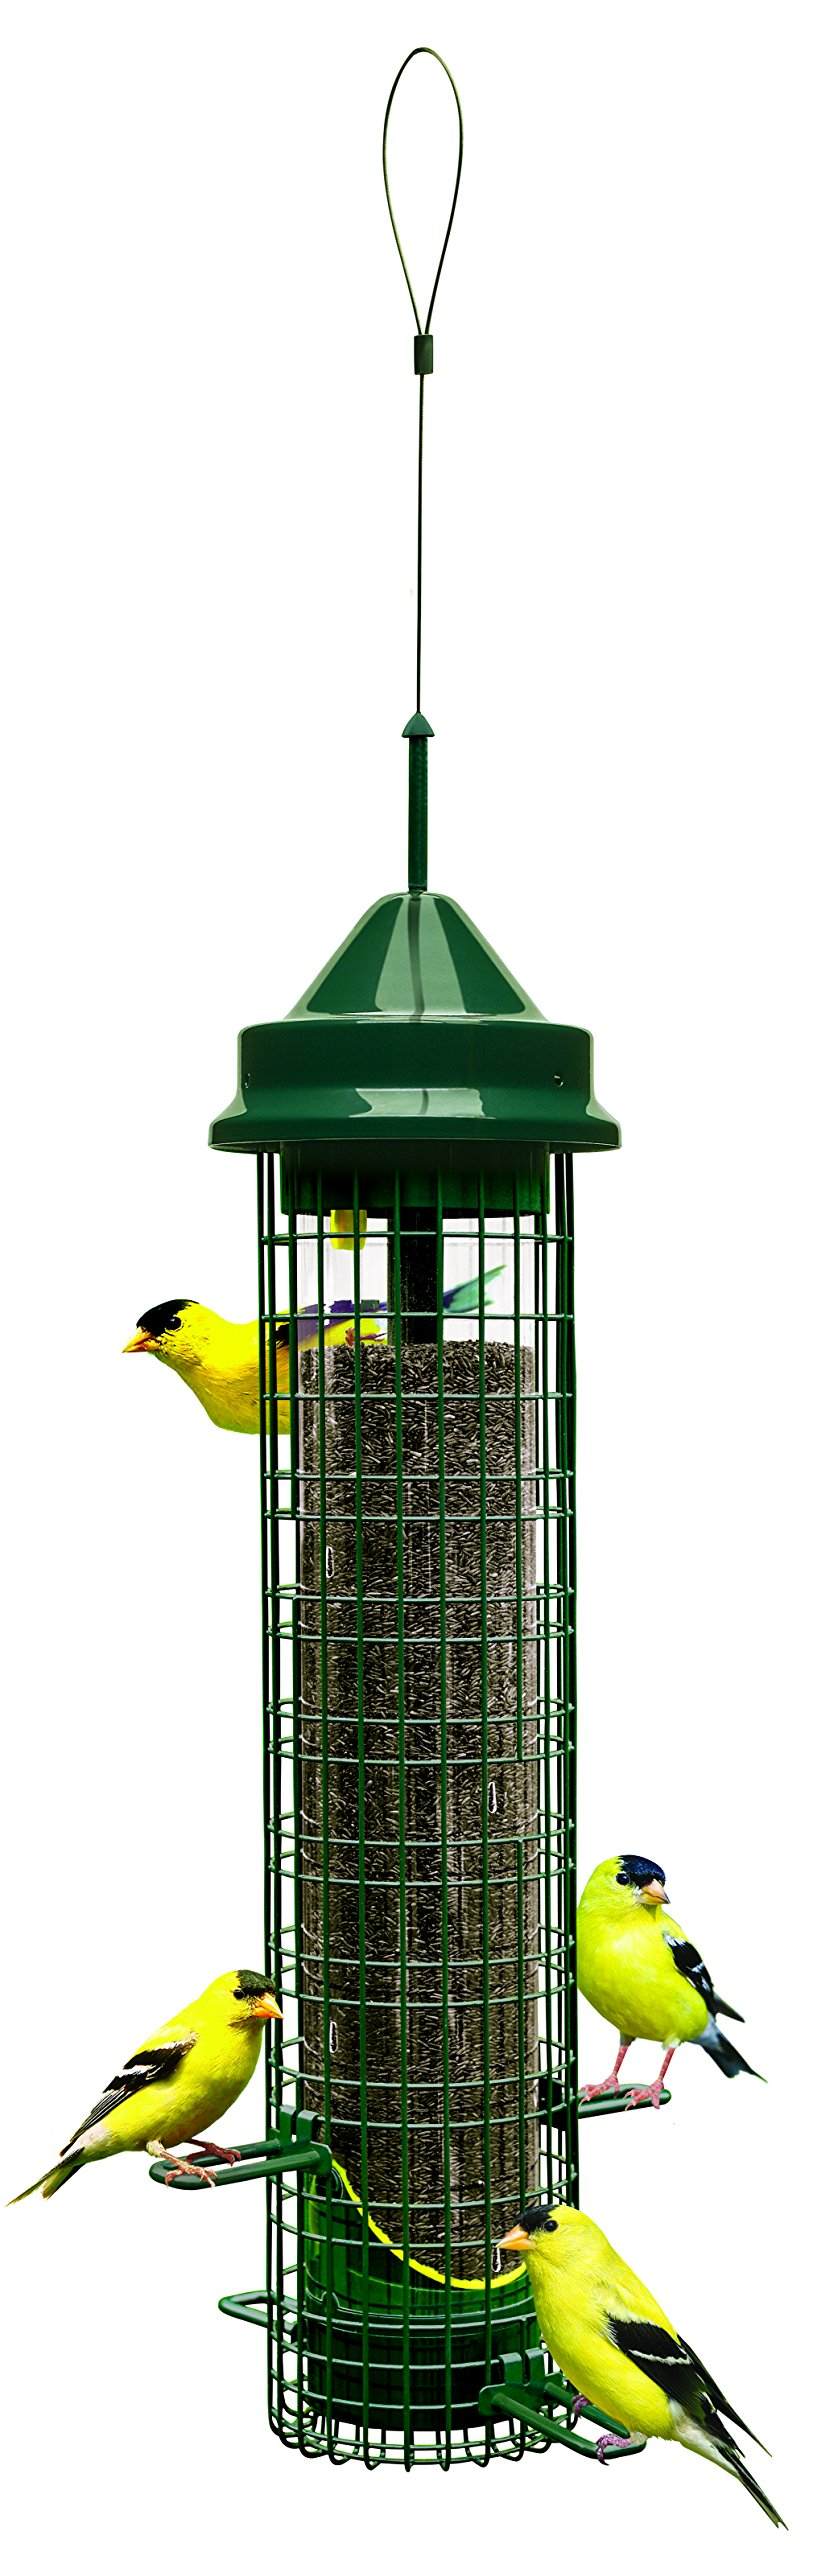 Squirrel Buster Finch 5.3''x5.3''x32'' (w/hanger) Wild Bird Feeder with 4 Metal Perches and 8 Feeding Ports, 2.4lb Thistle/Nijer Seed Capacity